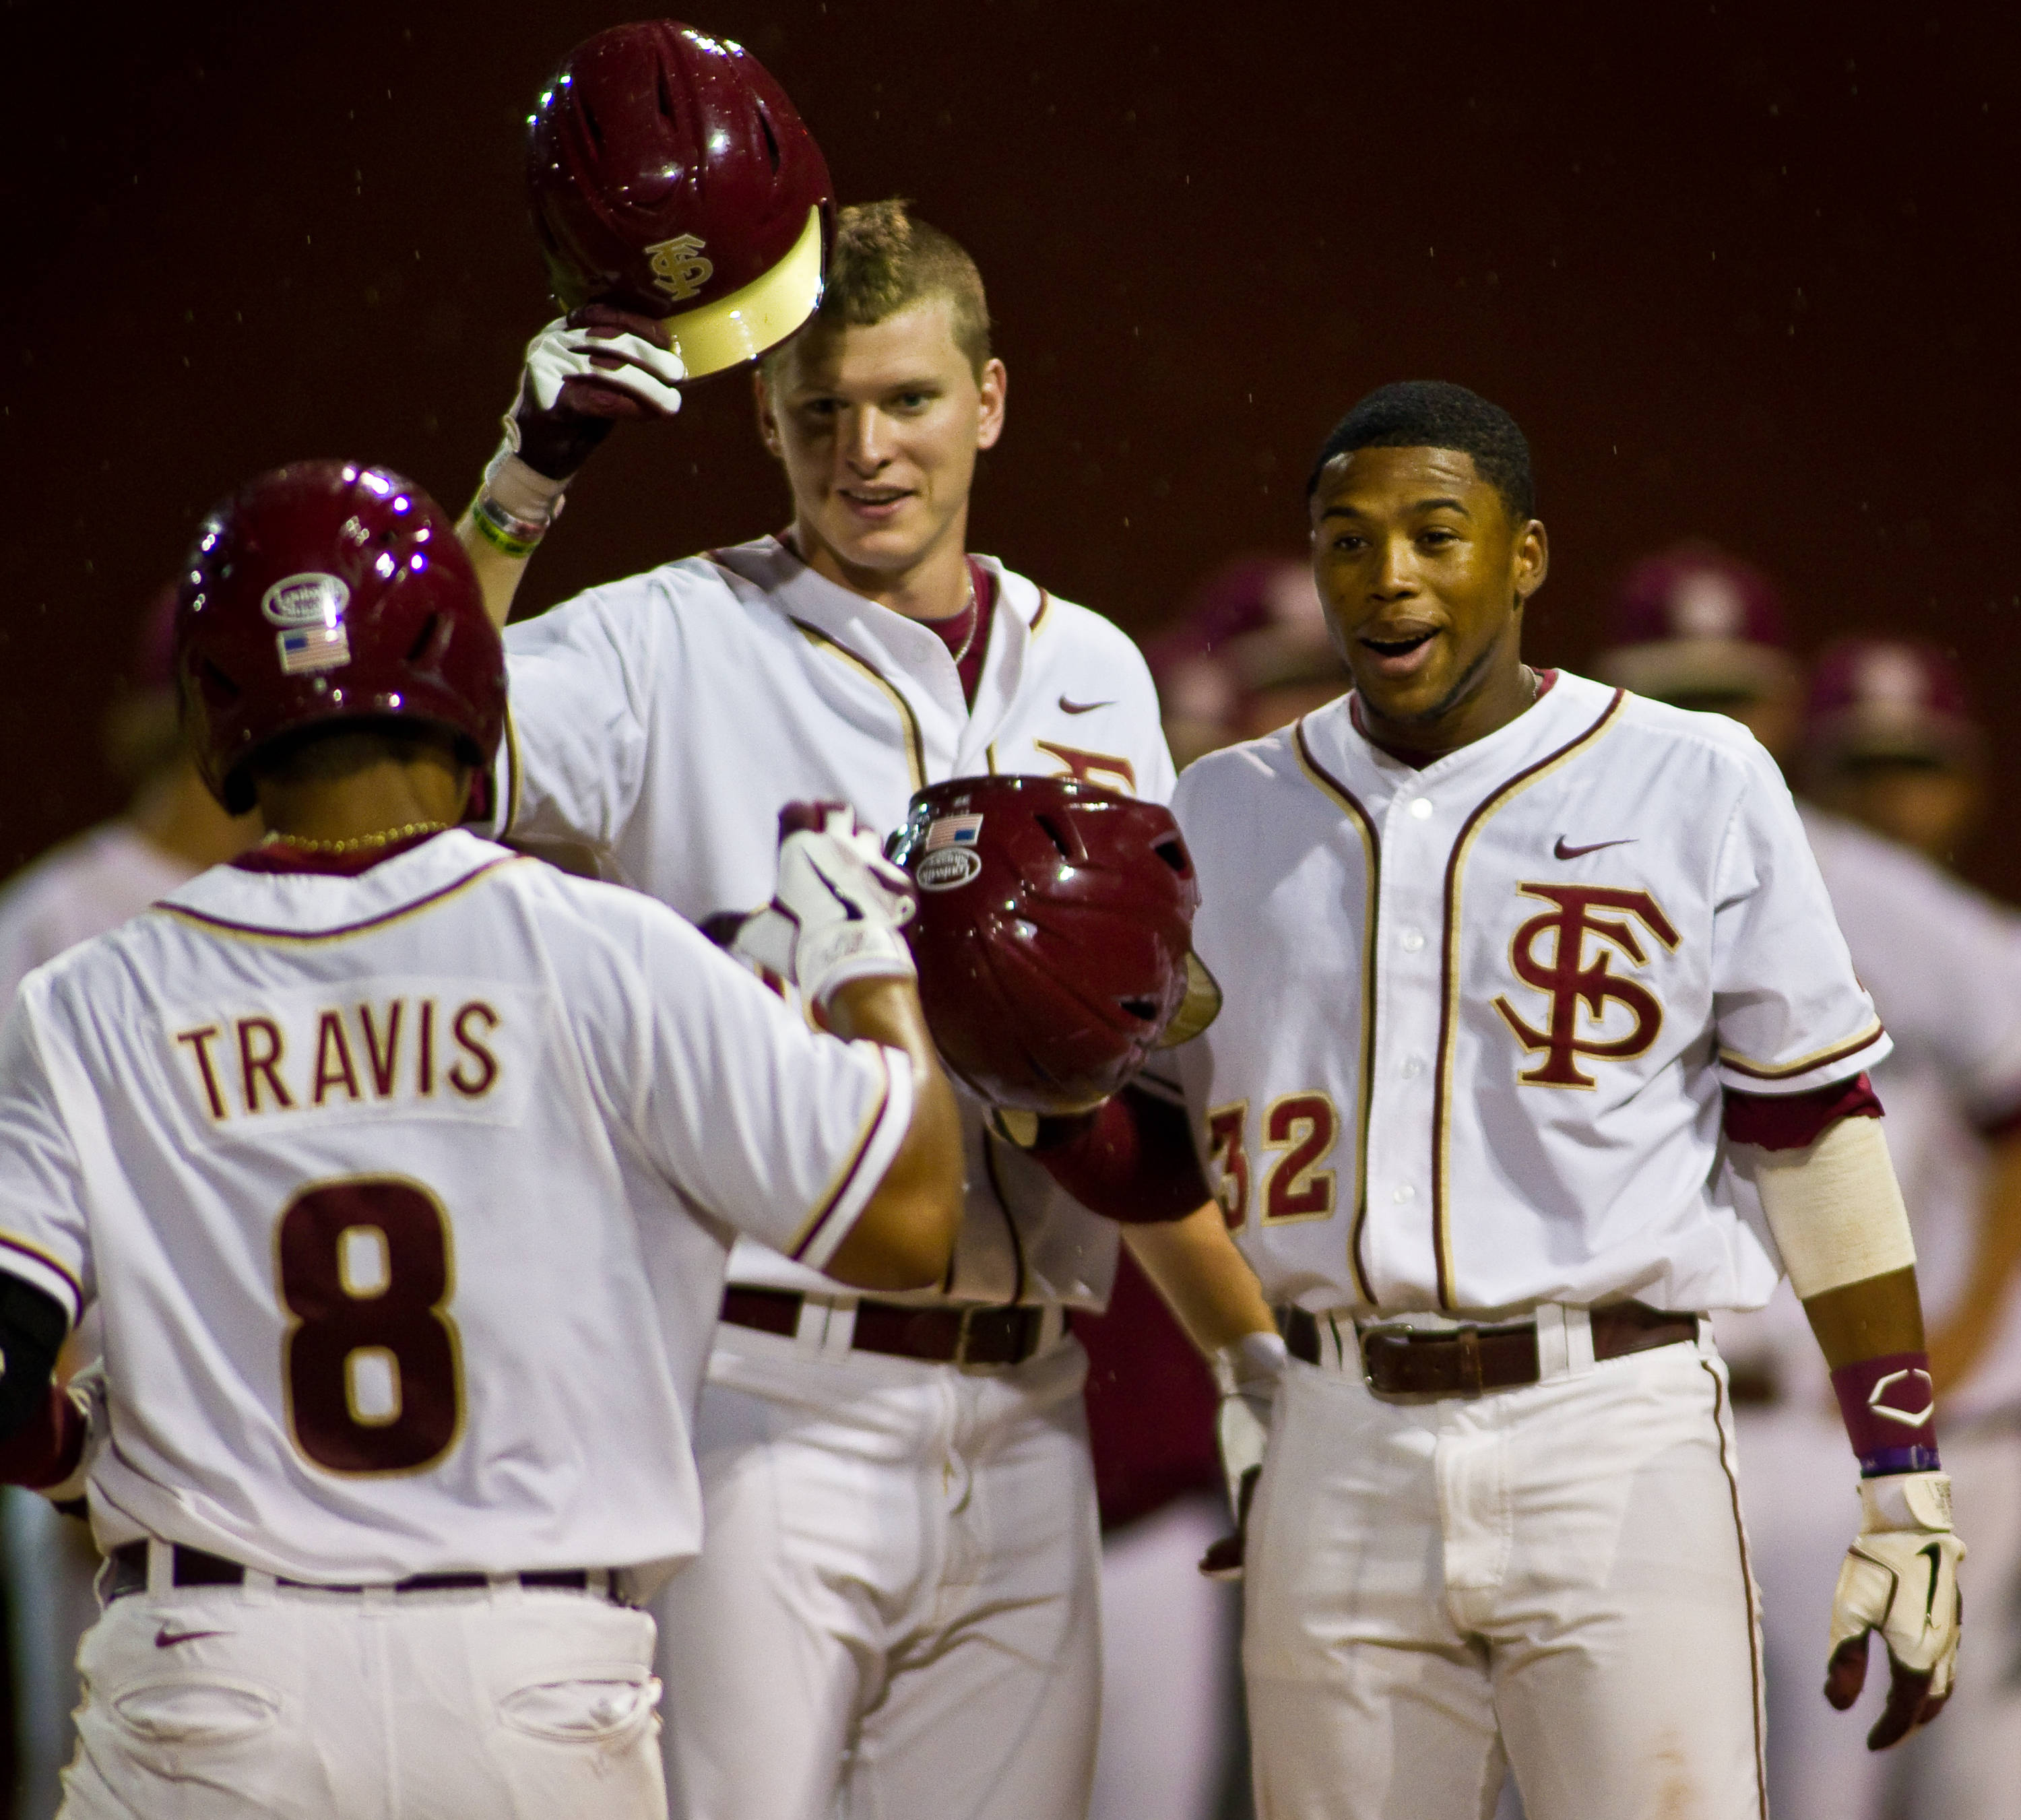 Seth Miller and Sherman Johnson greet Devon Travis at home after Travis hits his second home run of the season.